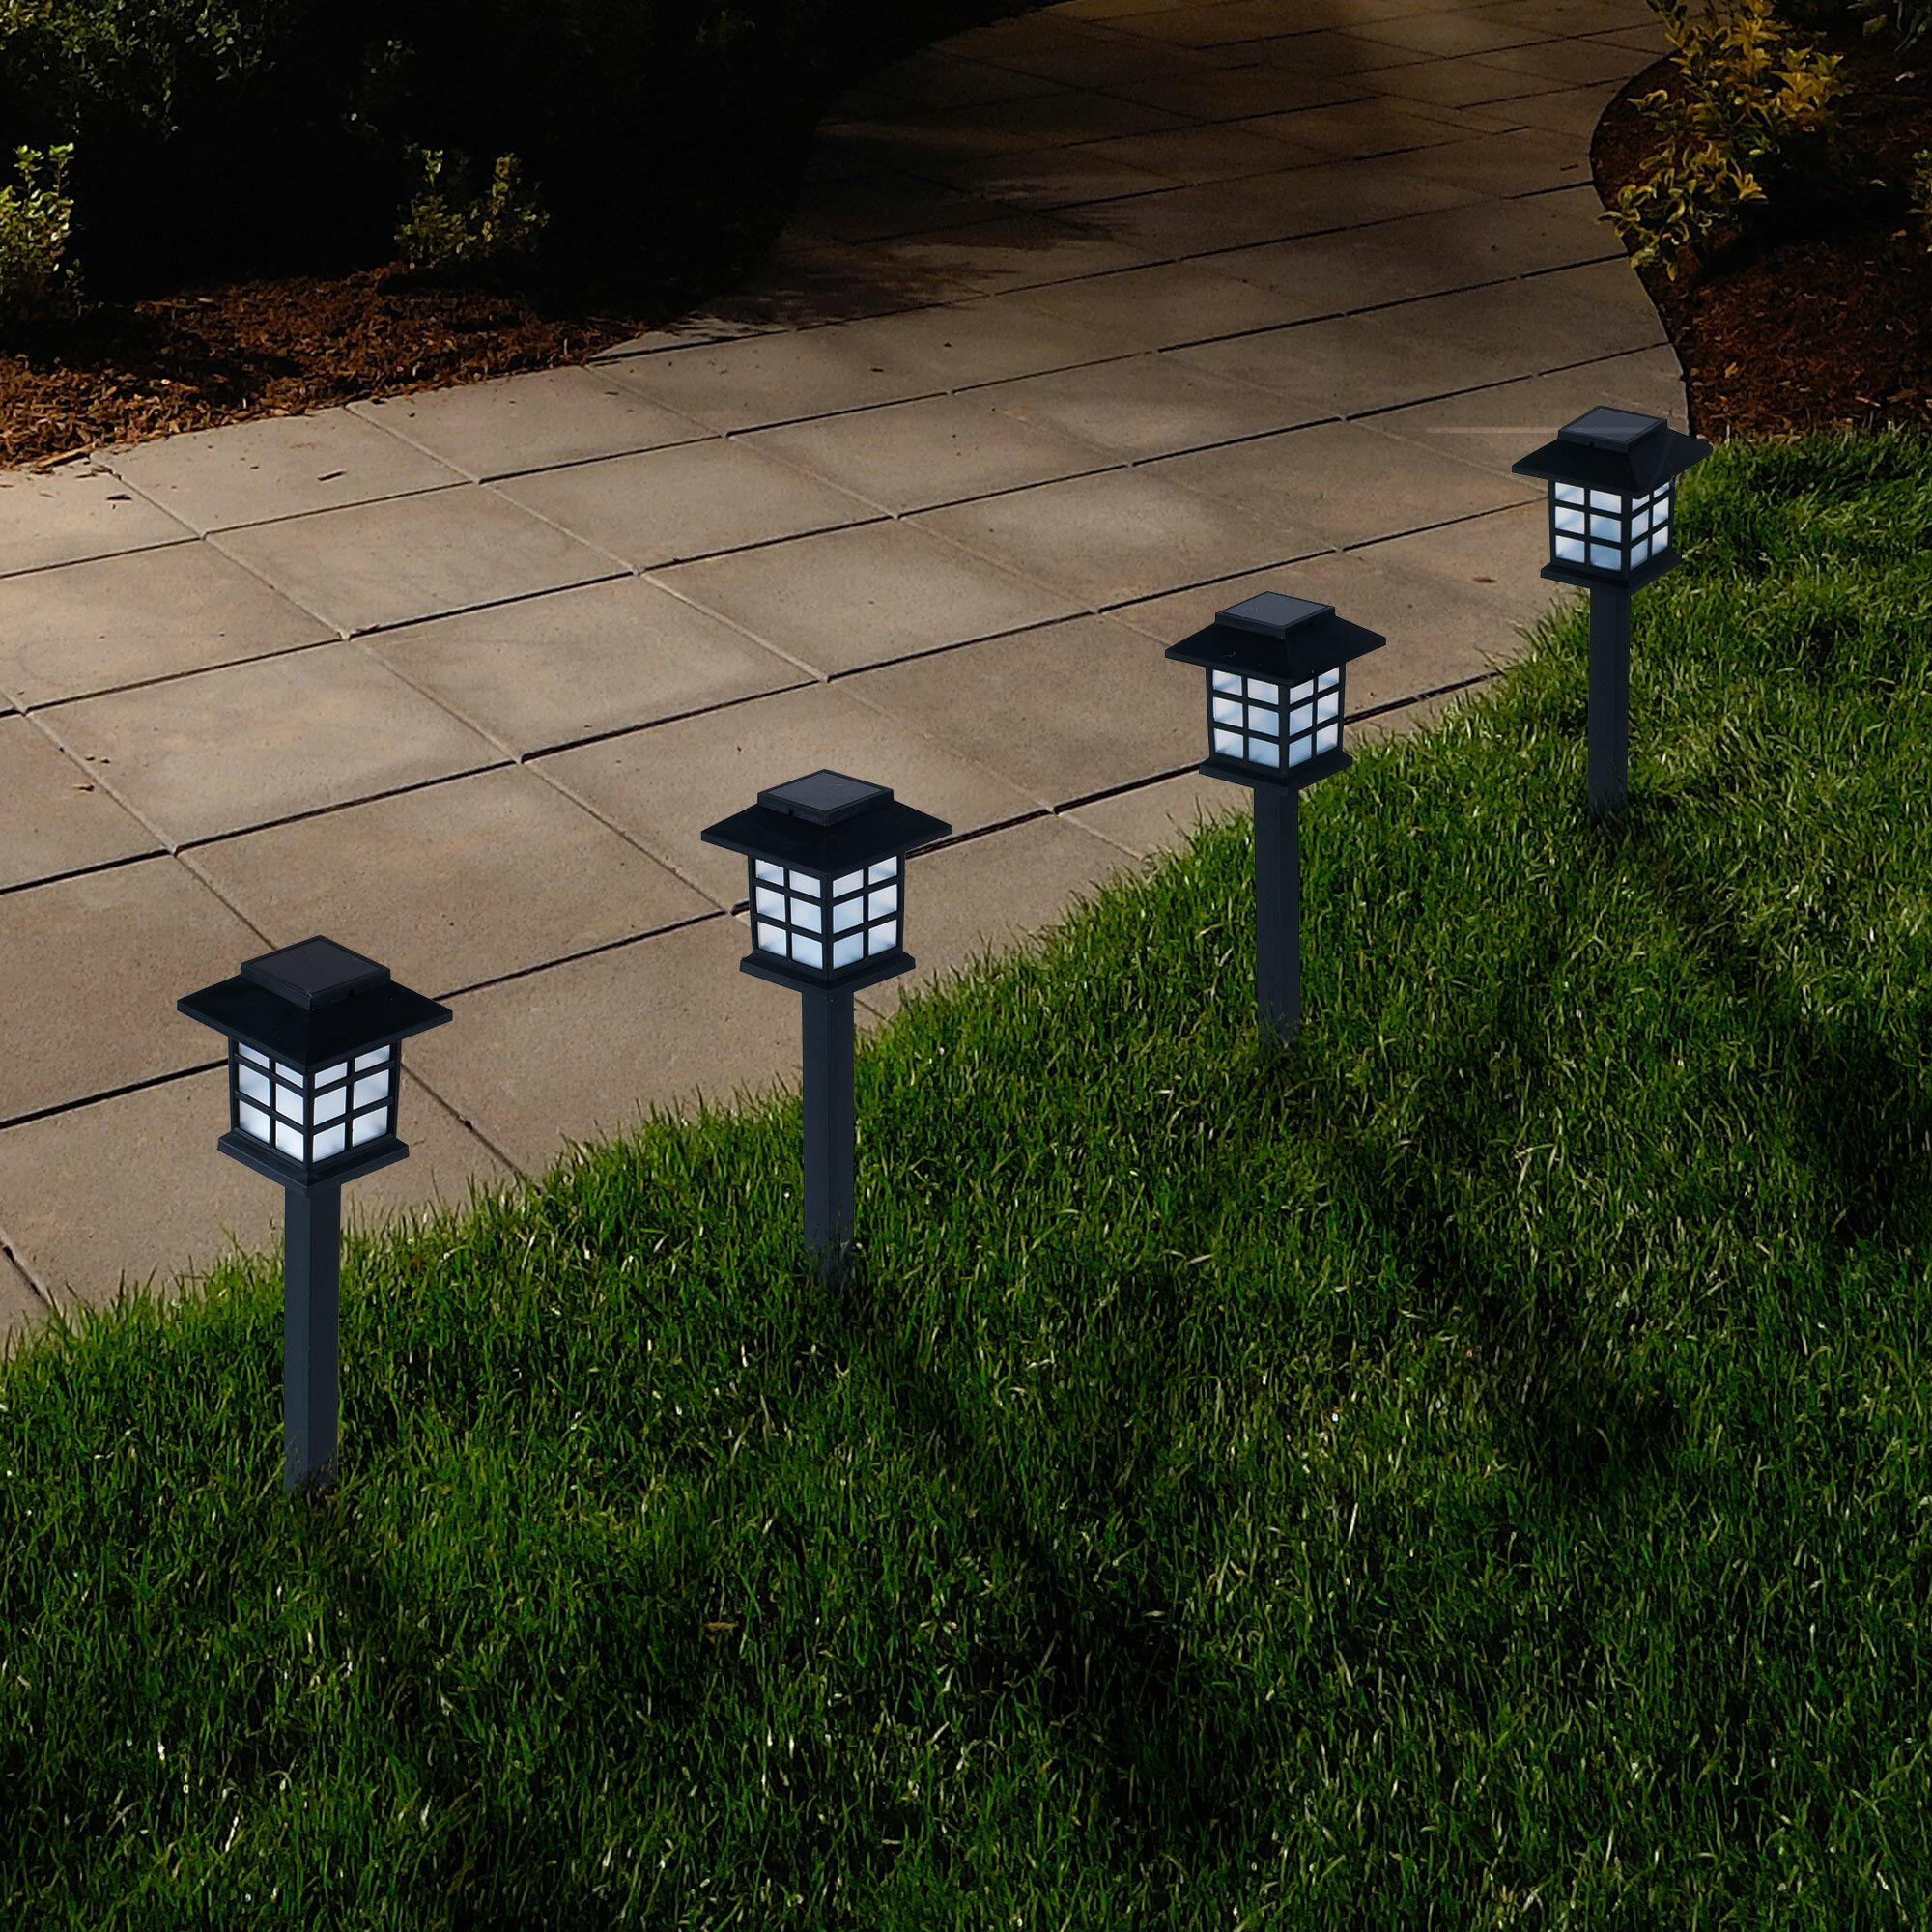 Pure Garden LED Pathway Lighting & Reviews